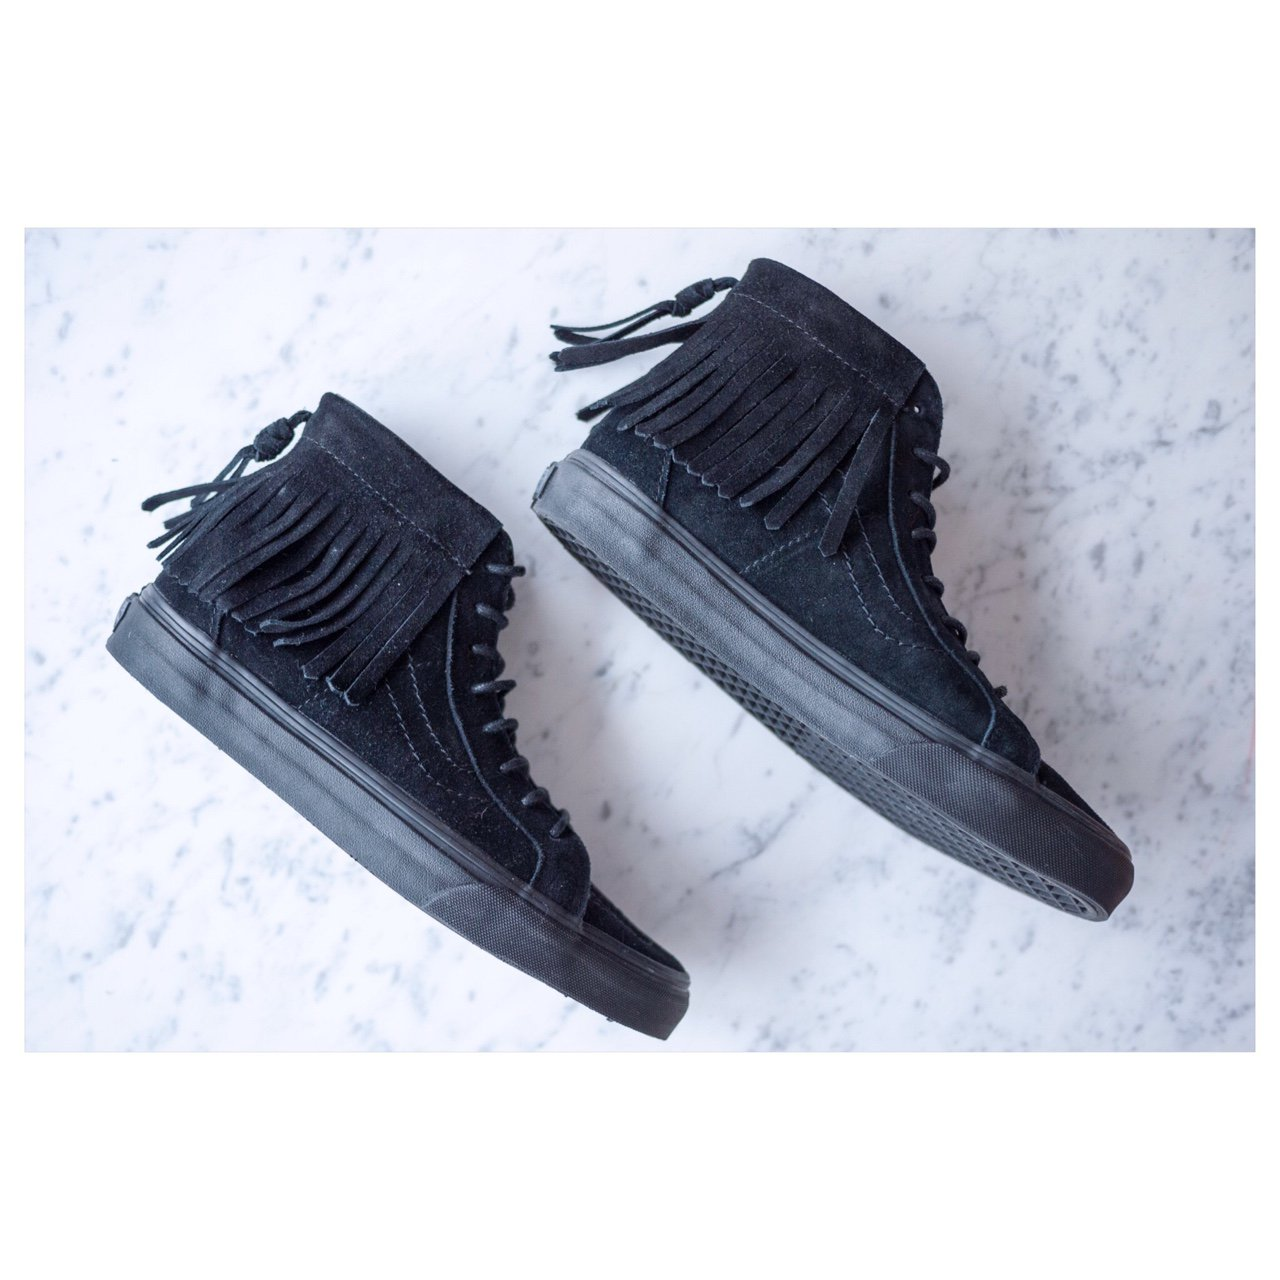 954f97dc96e VANS SK8 - HI soft black suede moccasins NEW with box - Depop